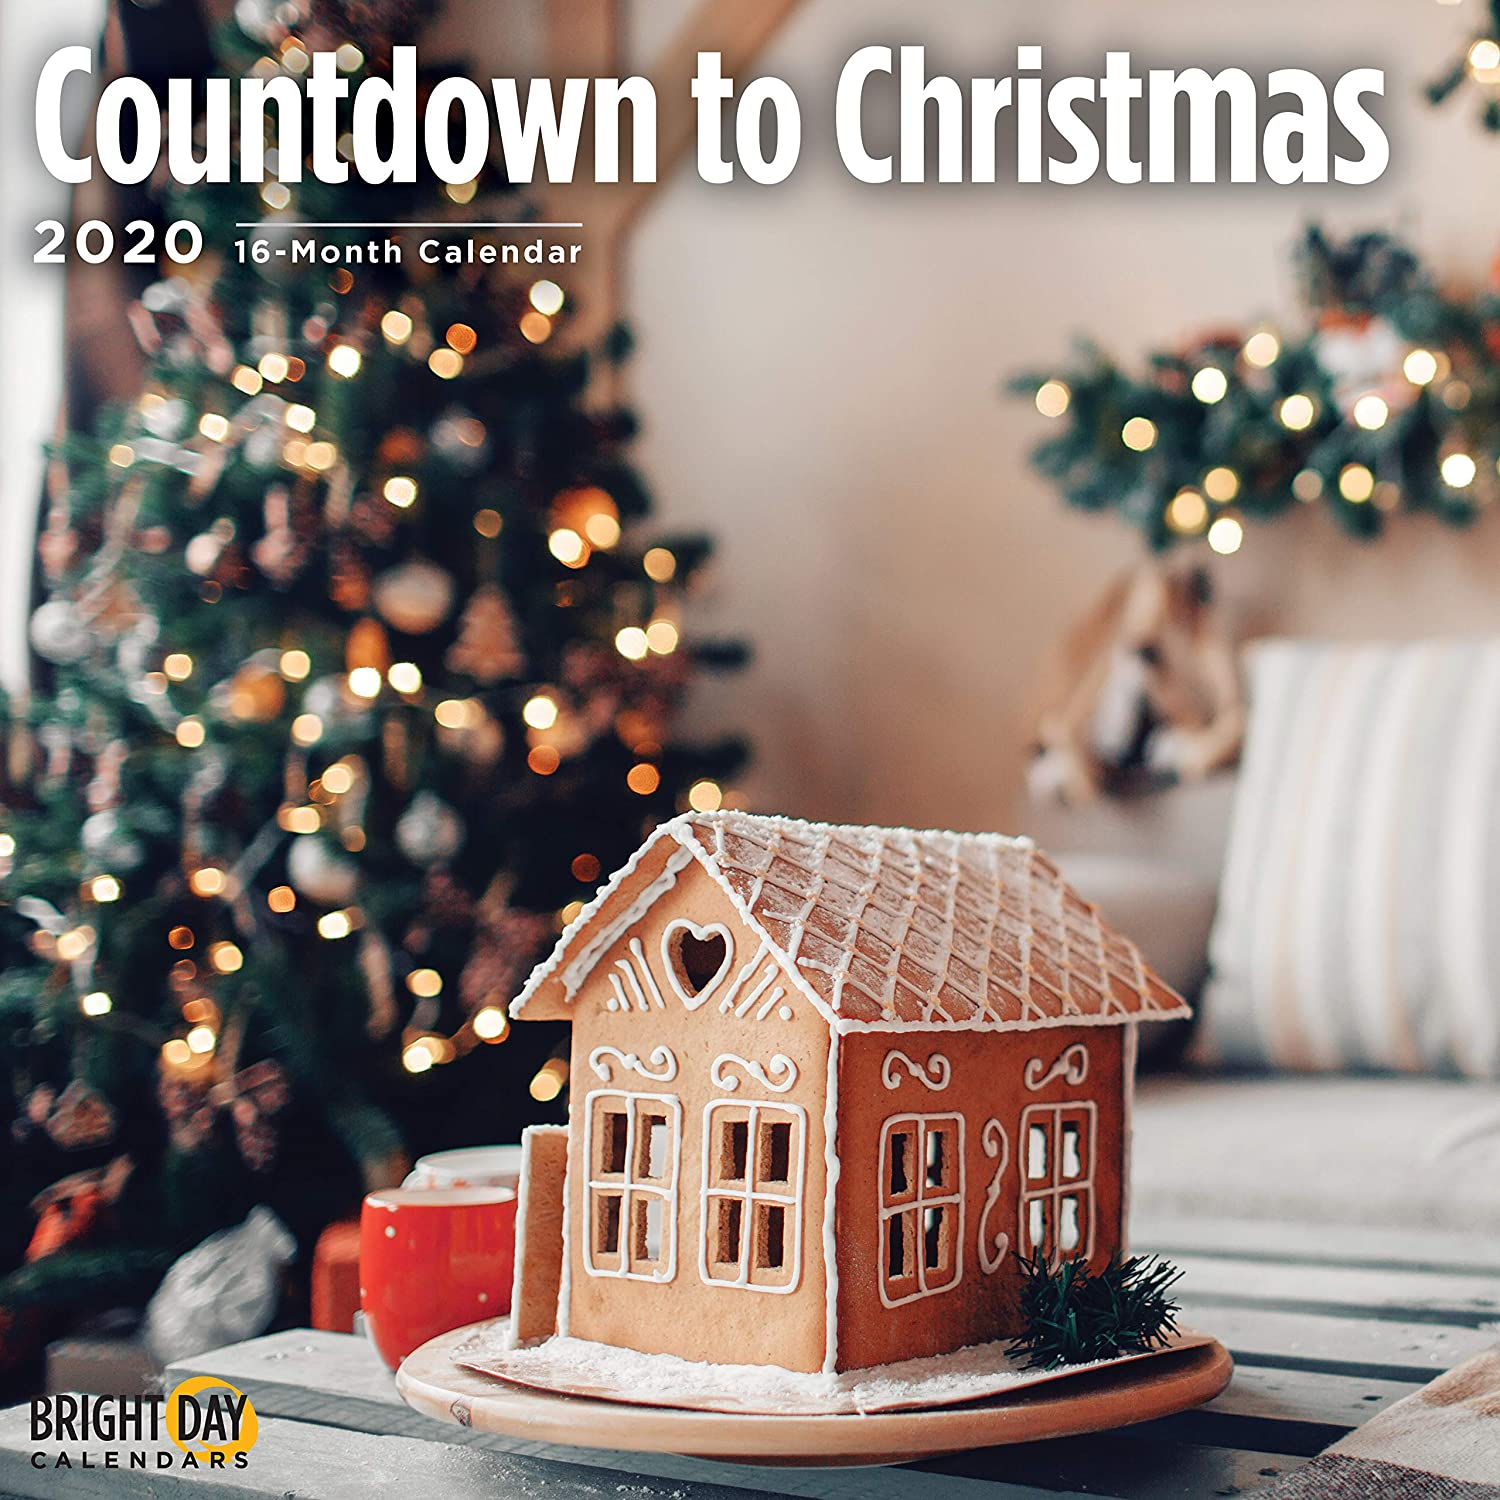 Christmas 2020.Kids Family Themed Wall Calendars By Bright Day Calendars 16 Month Wall Calendars 12 X 12 Inches Countdown To Christmas 2020